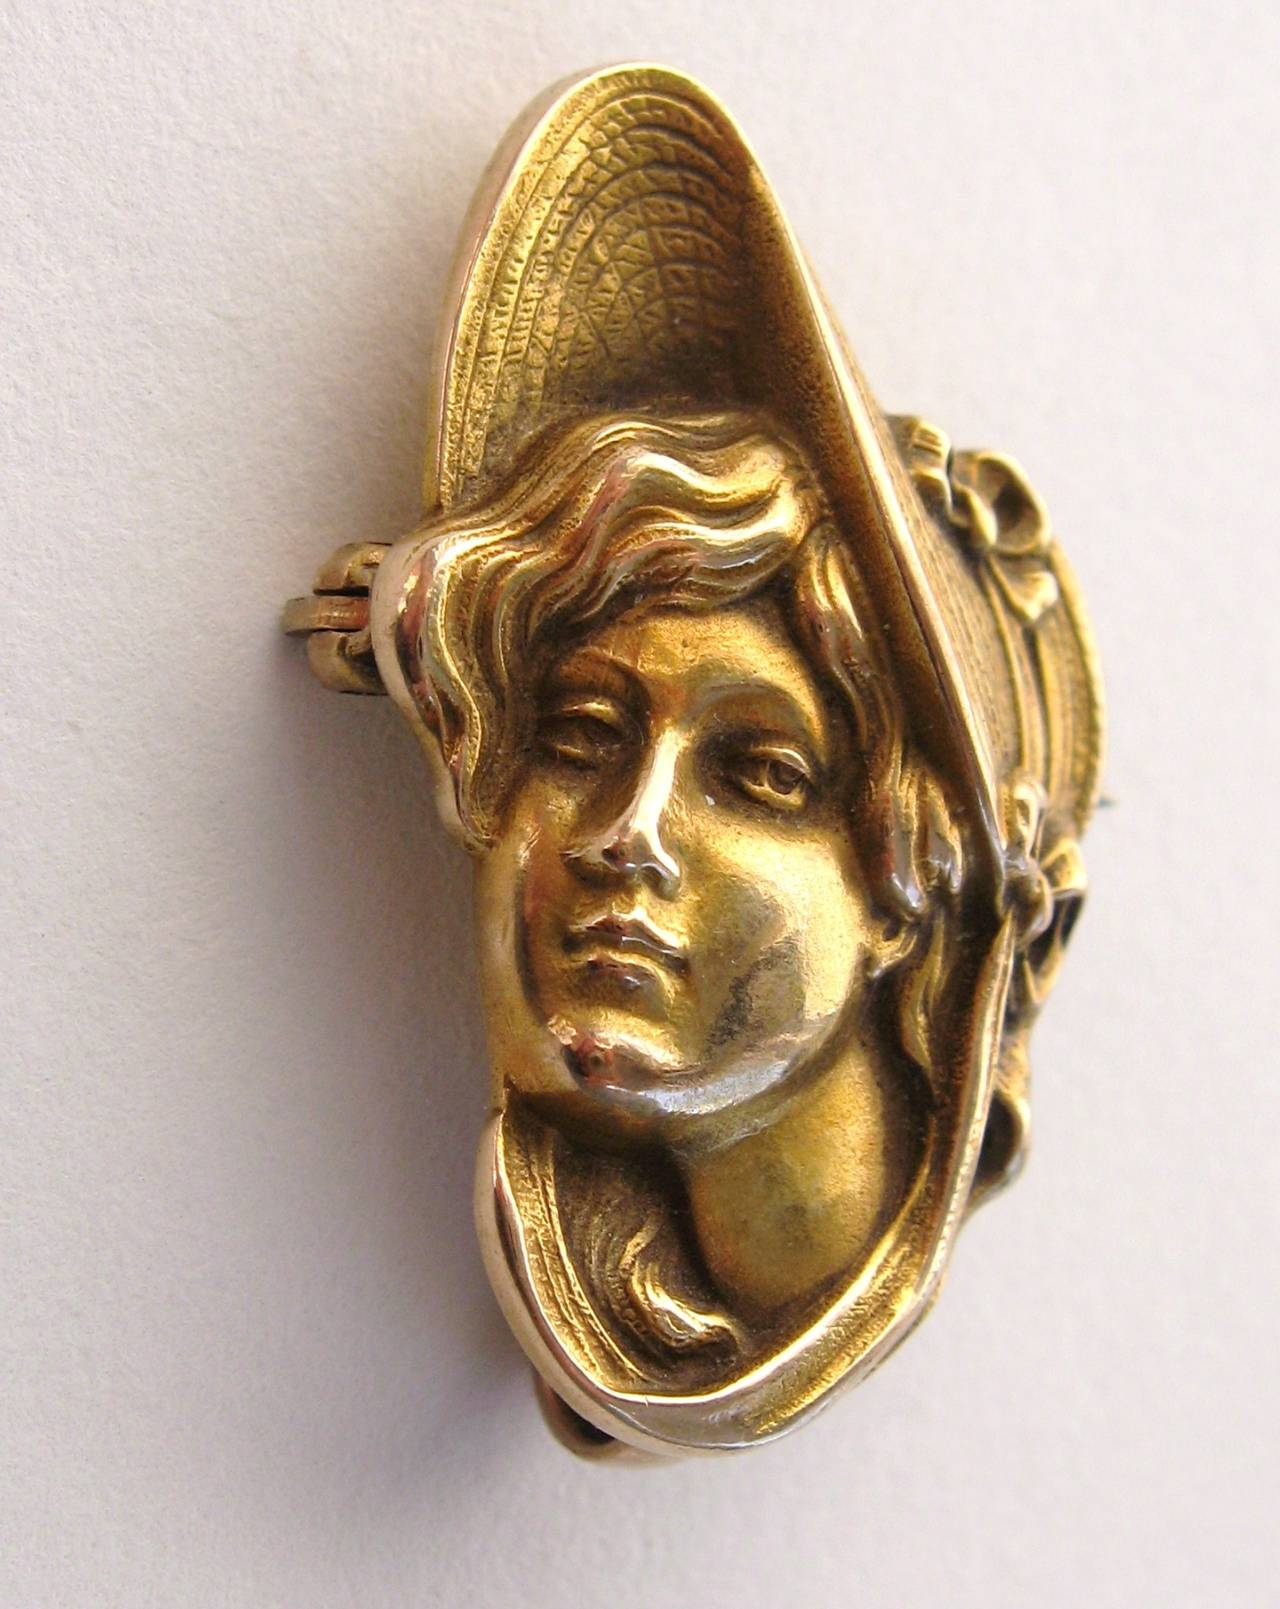 Vintage art nouveau circa 1900s Profile  of a women brooch pin.